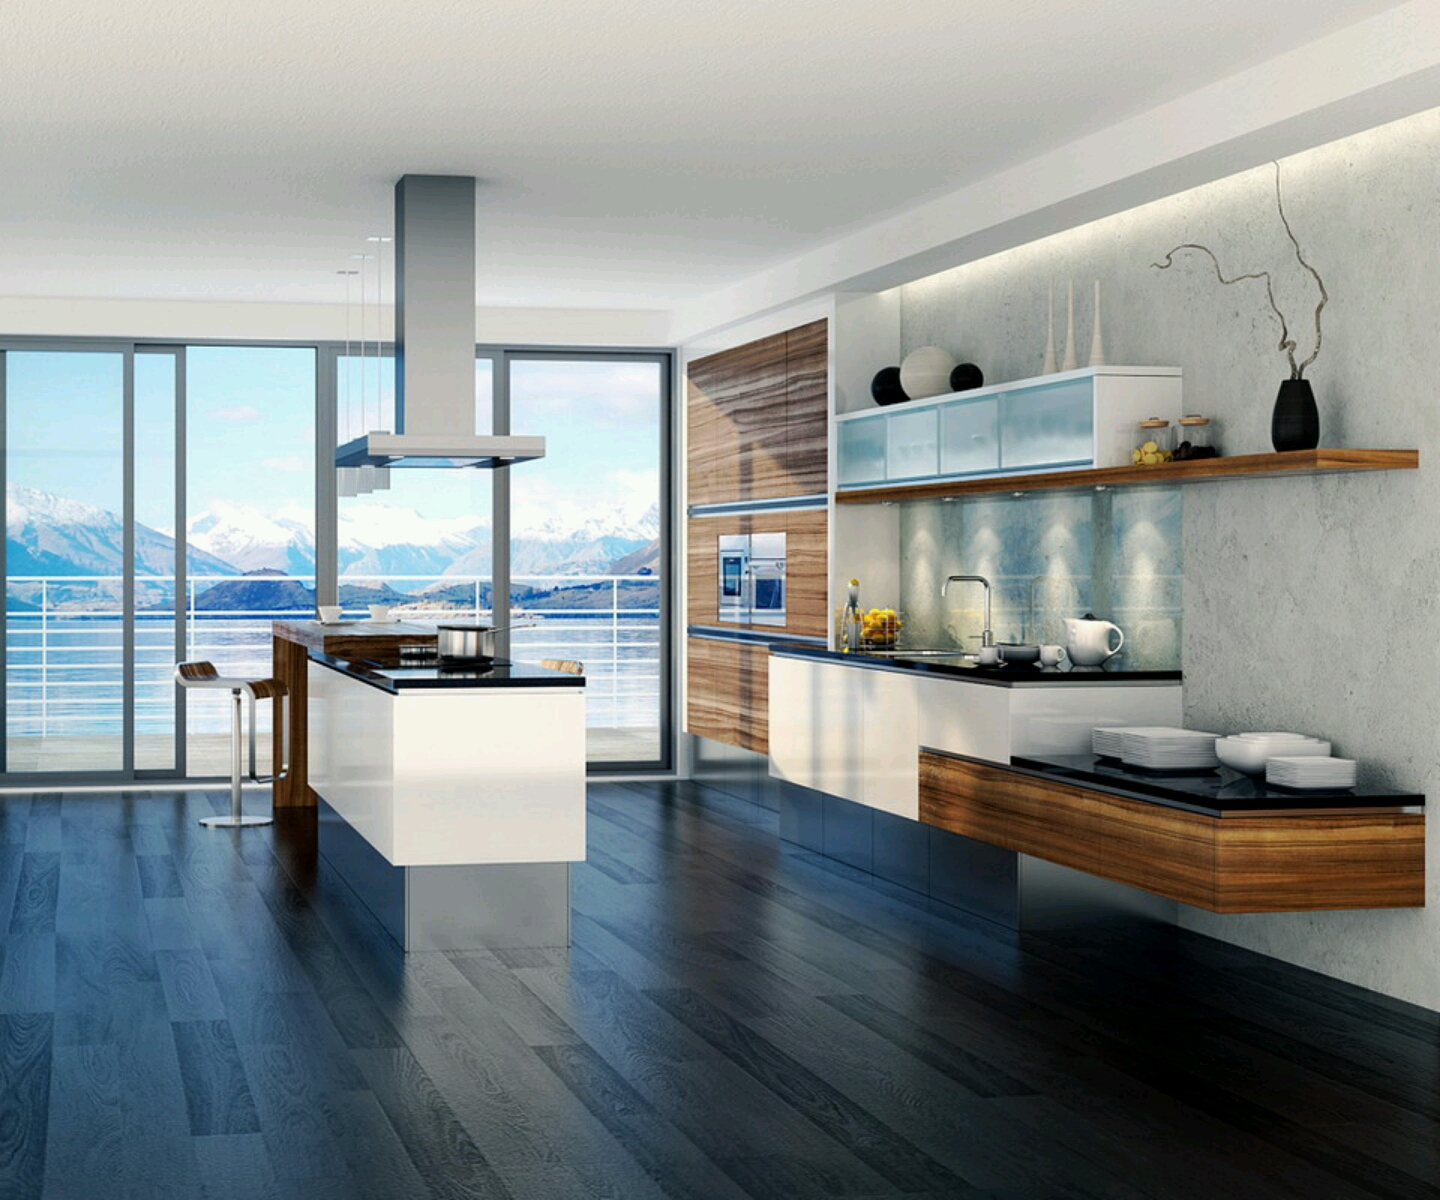 TARA JB'S: Modern homes ultra modern kitchen designs ideas.